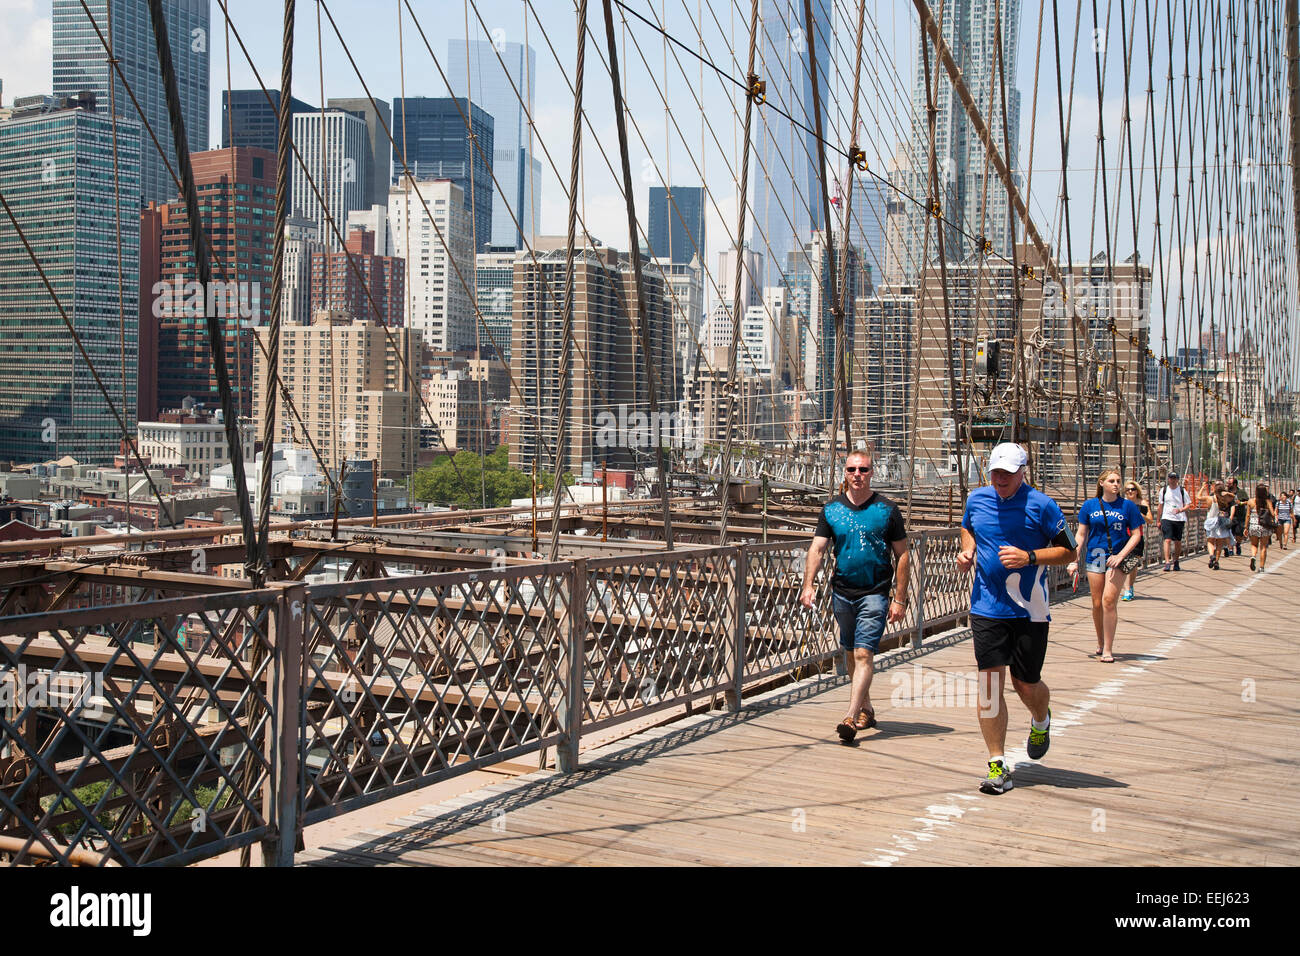 Brooklyn bridge and cityscape, East river, New York, Usa, America - Stock Image